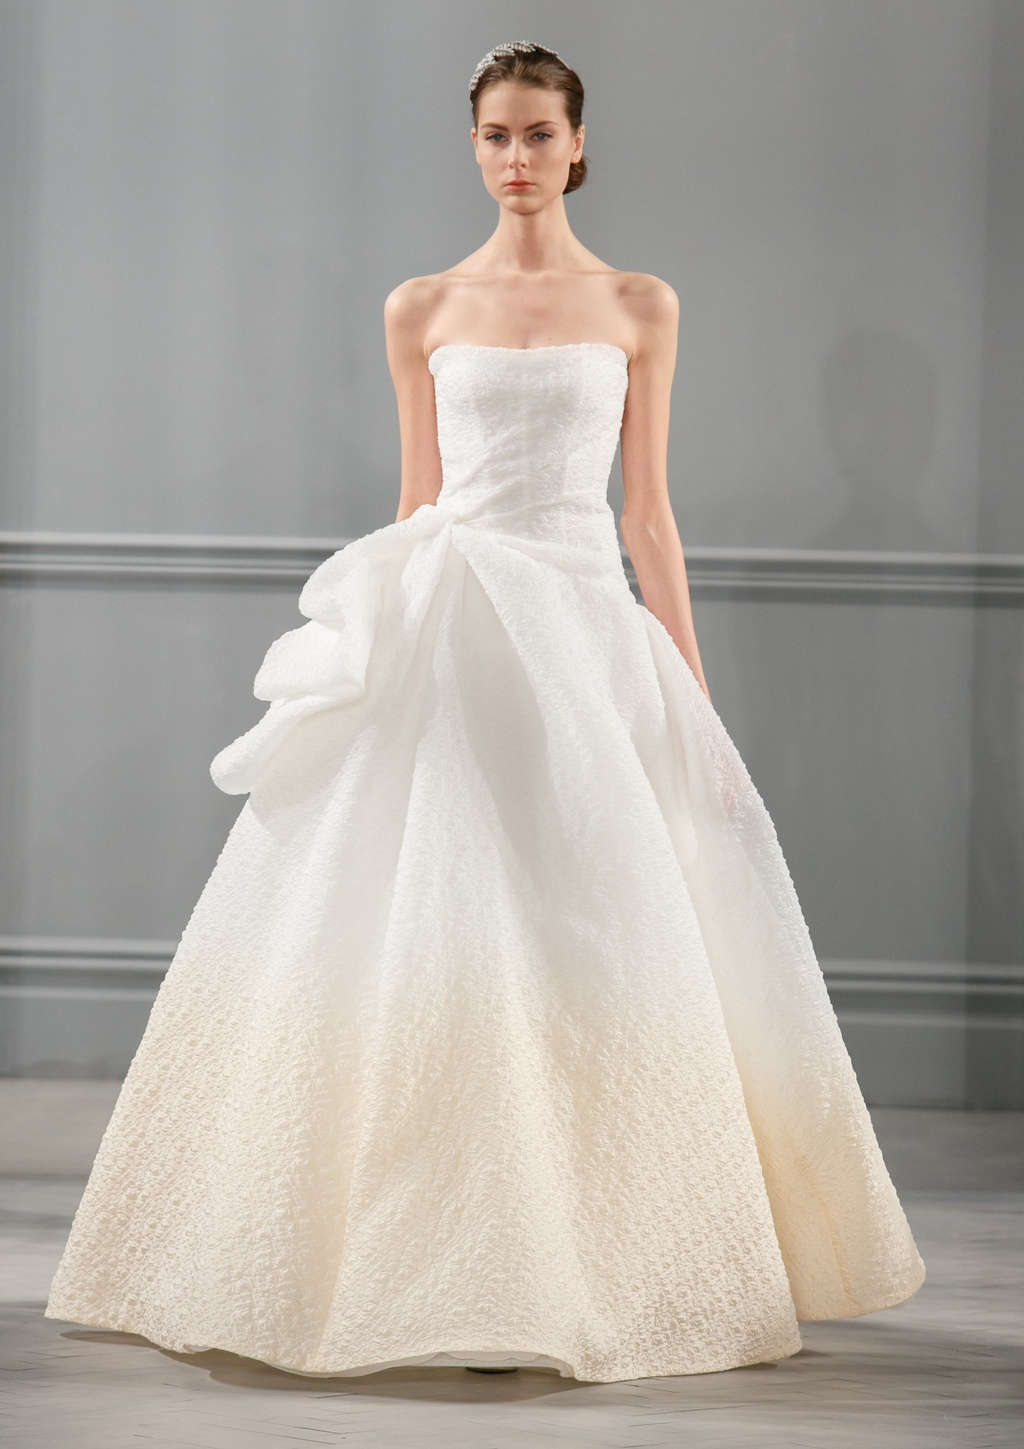 Spring-2014-wedding-dress-monique-lhuillier-bridal-paris.full